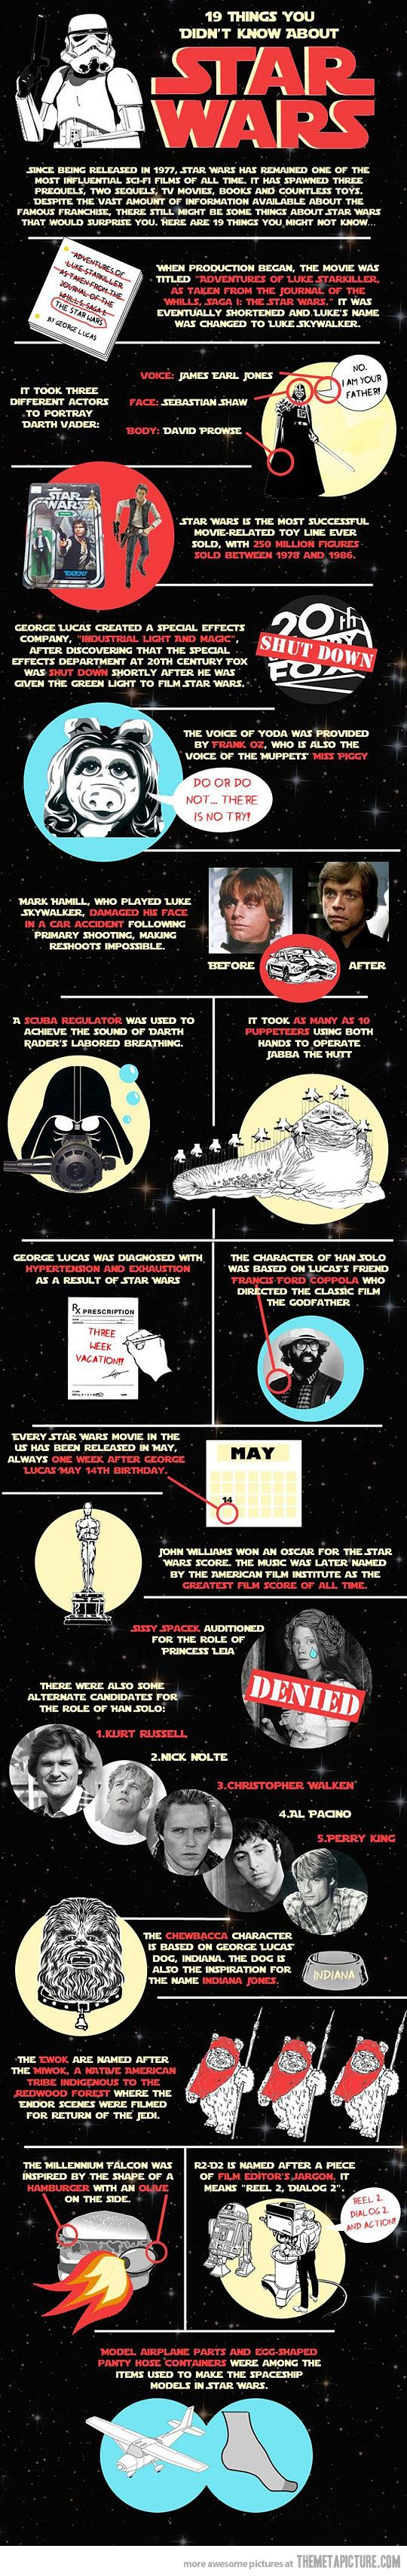 Things you didn't know about Star Wars. Do I get extra points for actually knowing all these things?